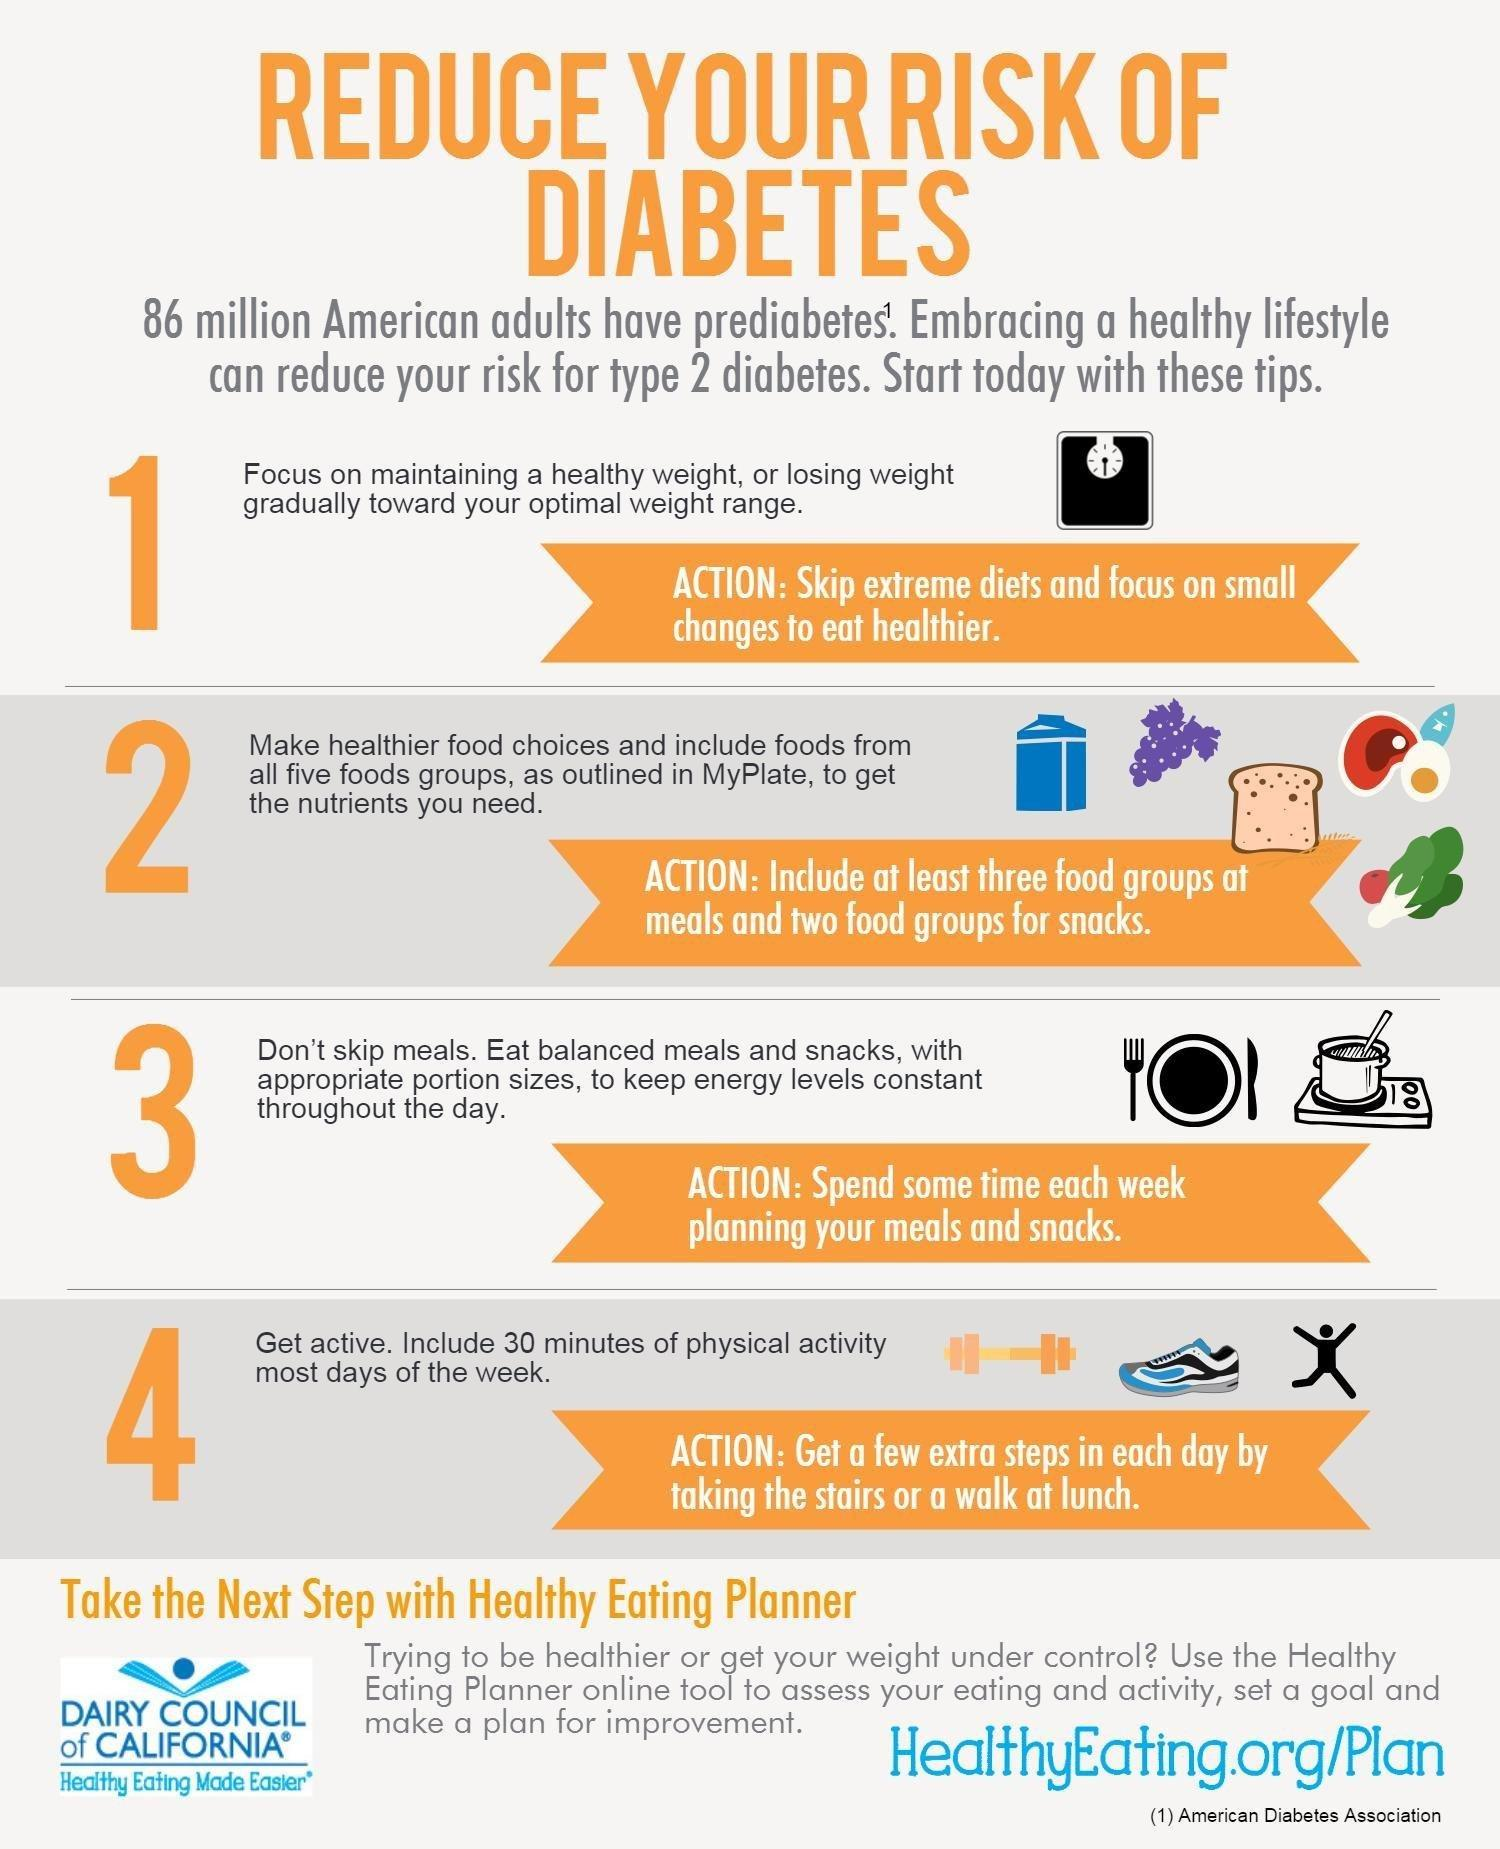 Is Type 2 Diabetes Preventable